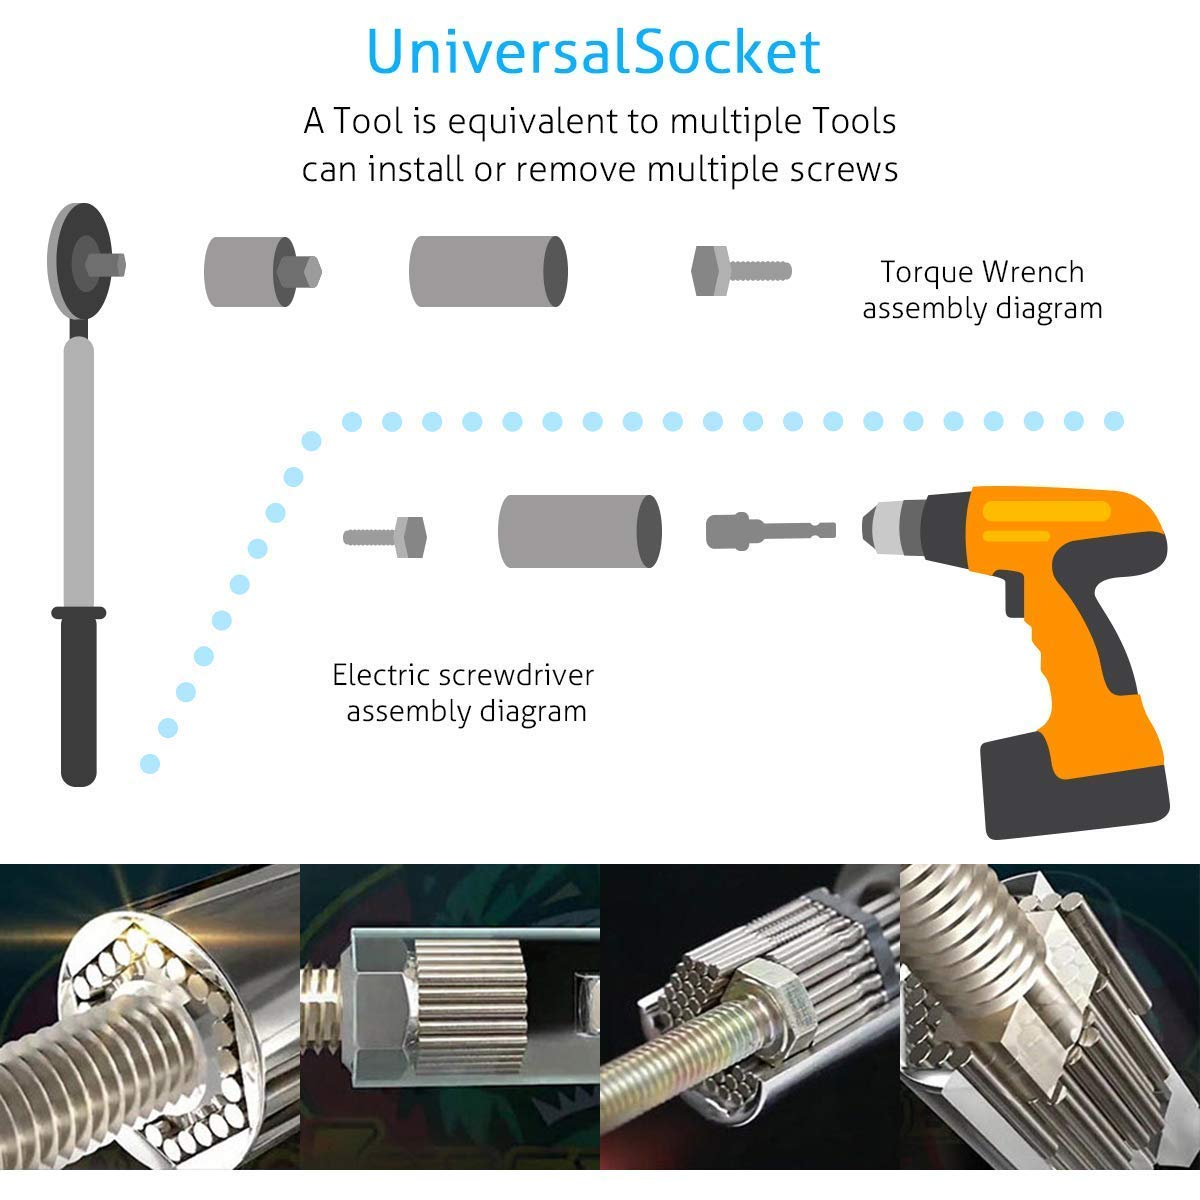 4 PCS Universal Socket Wrench Set 7-19mm Multi-function Hand Tools Universal Repair Tools Kit,105 Degree Right Angle Extension Power Screwdriver Drill Attachment 1//4 Drive 6mm Hex Magnetic Bit